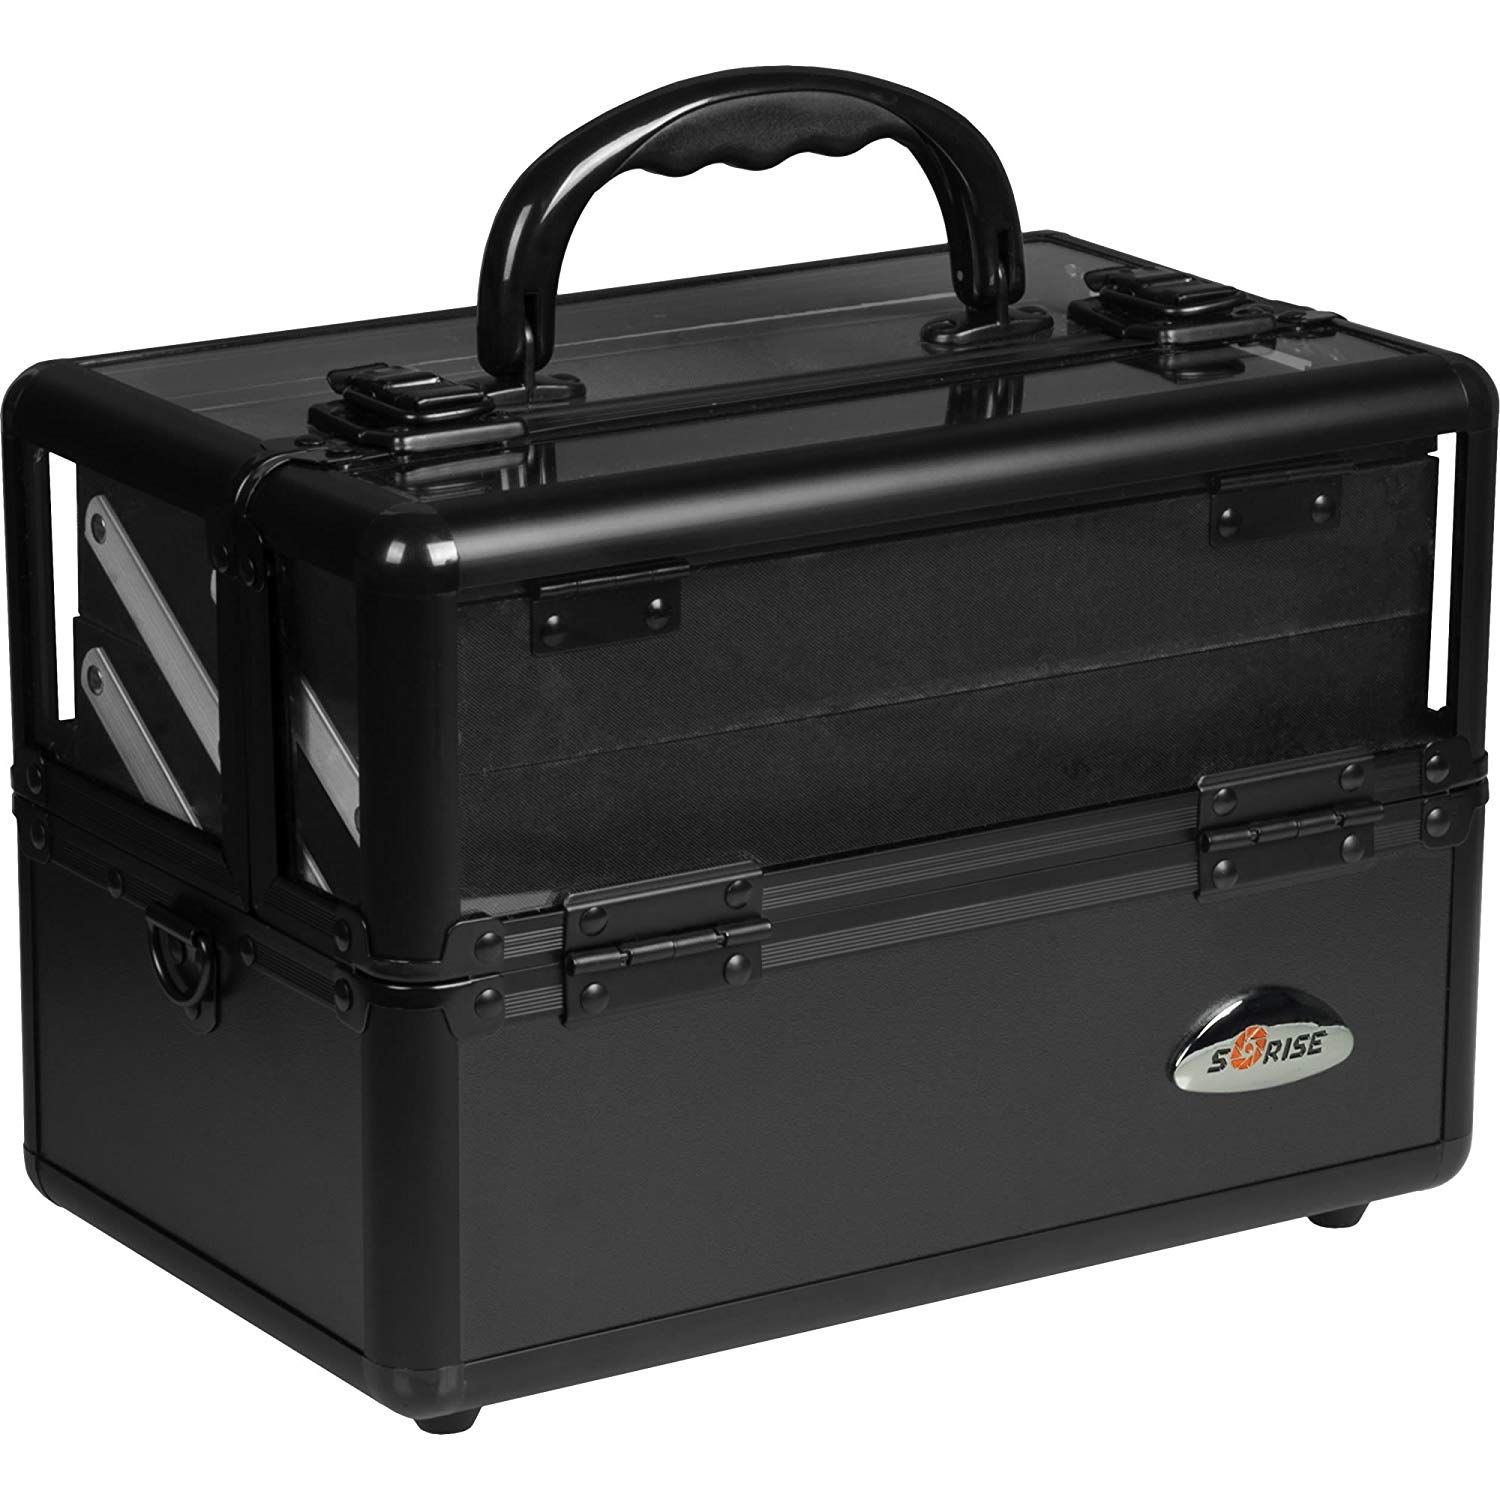 SUNRISE Makeup Train Case C0009 Clear Acryic Top, Travel